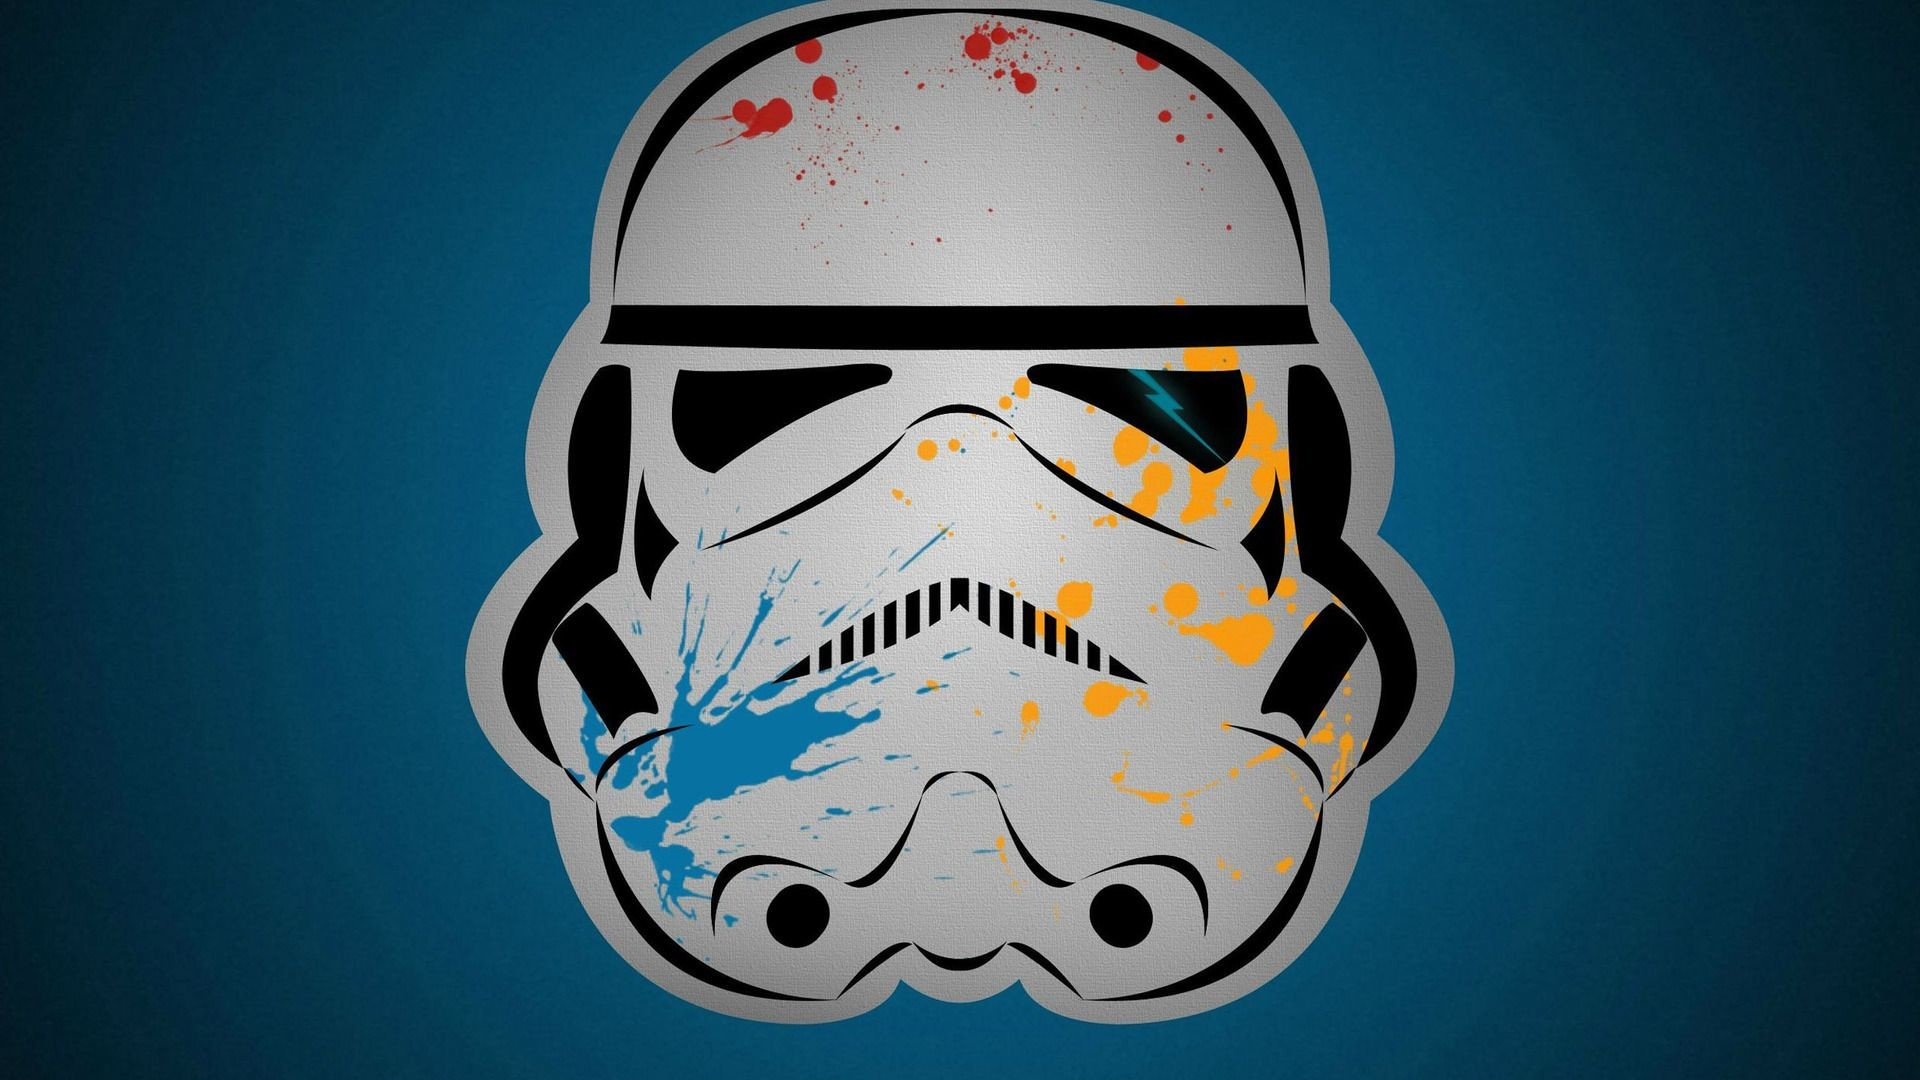 Star Wars Stormtrooper Wallpapers 68 Background Pictures